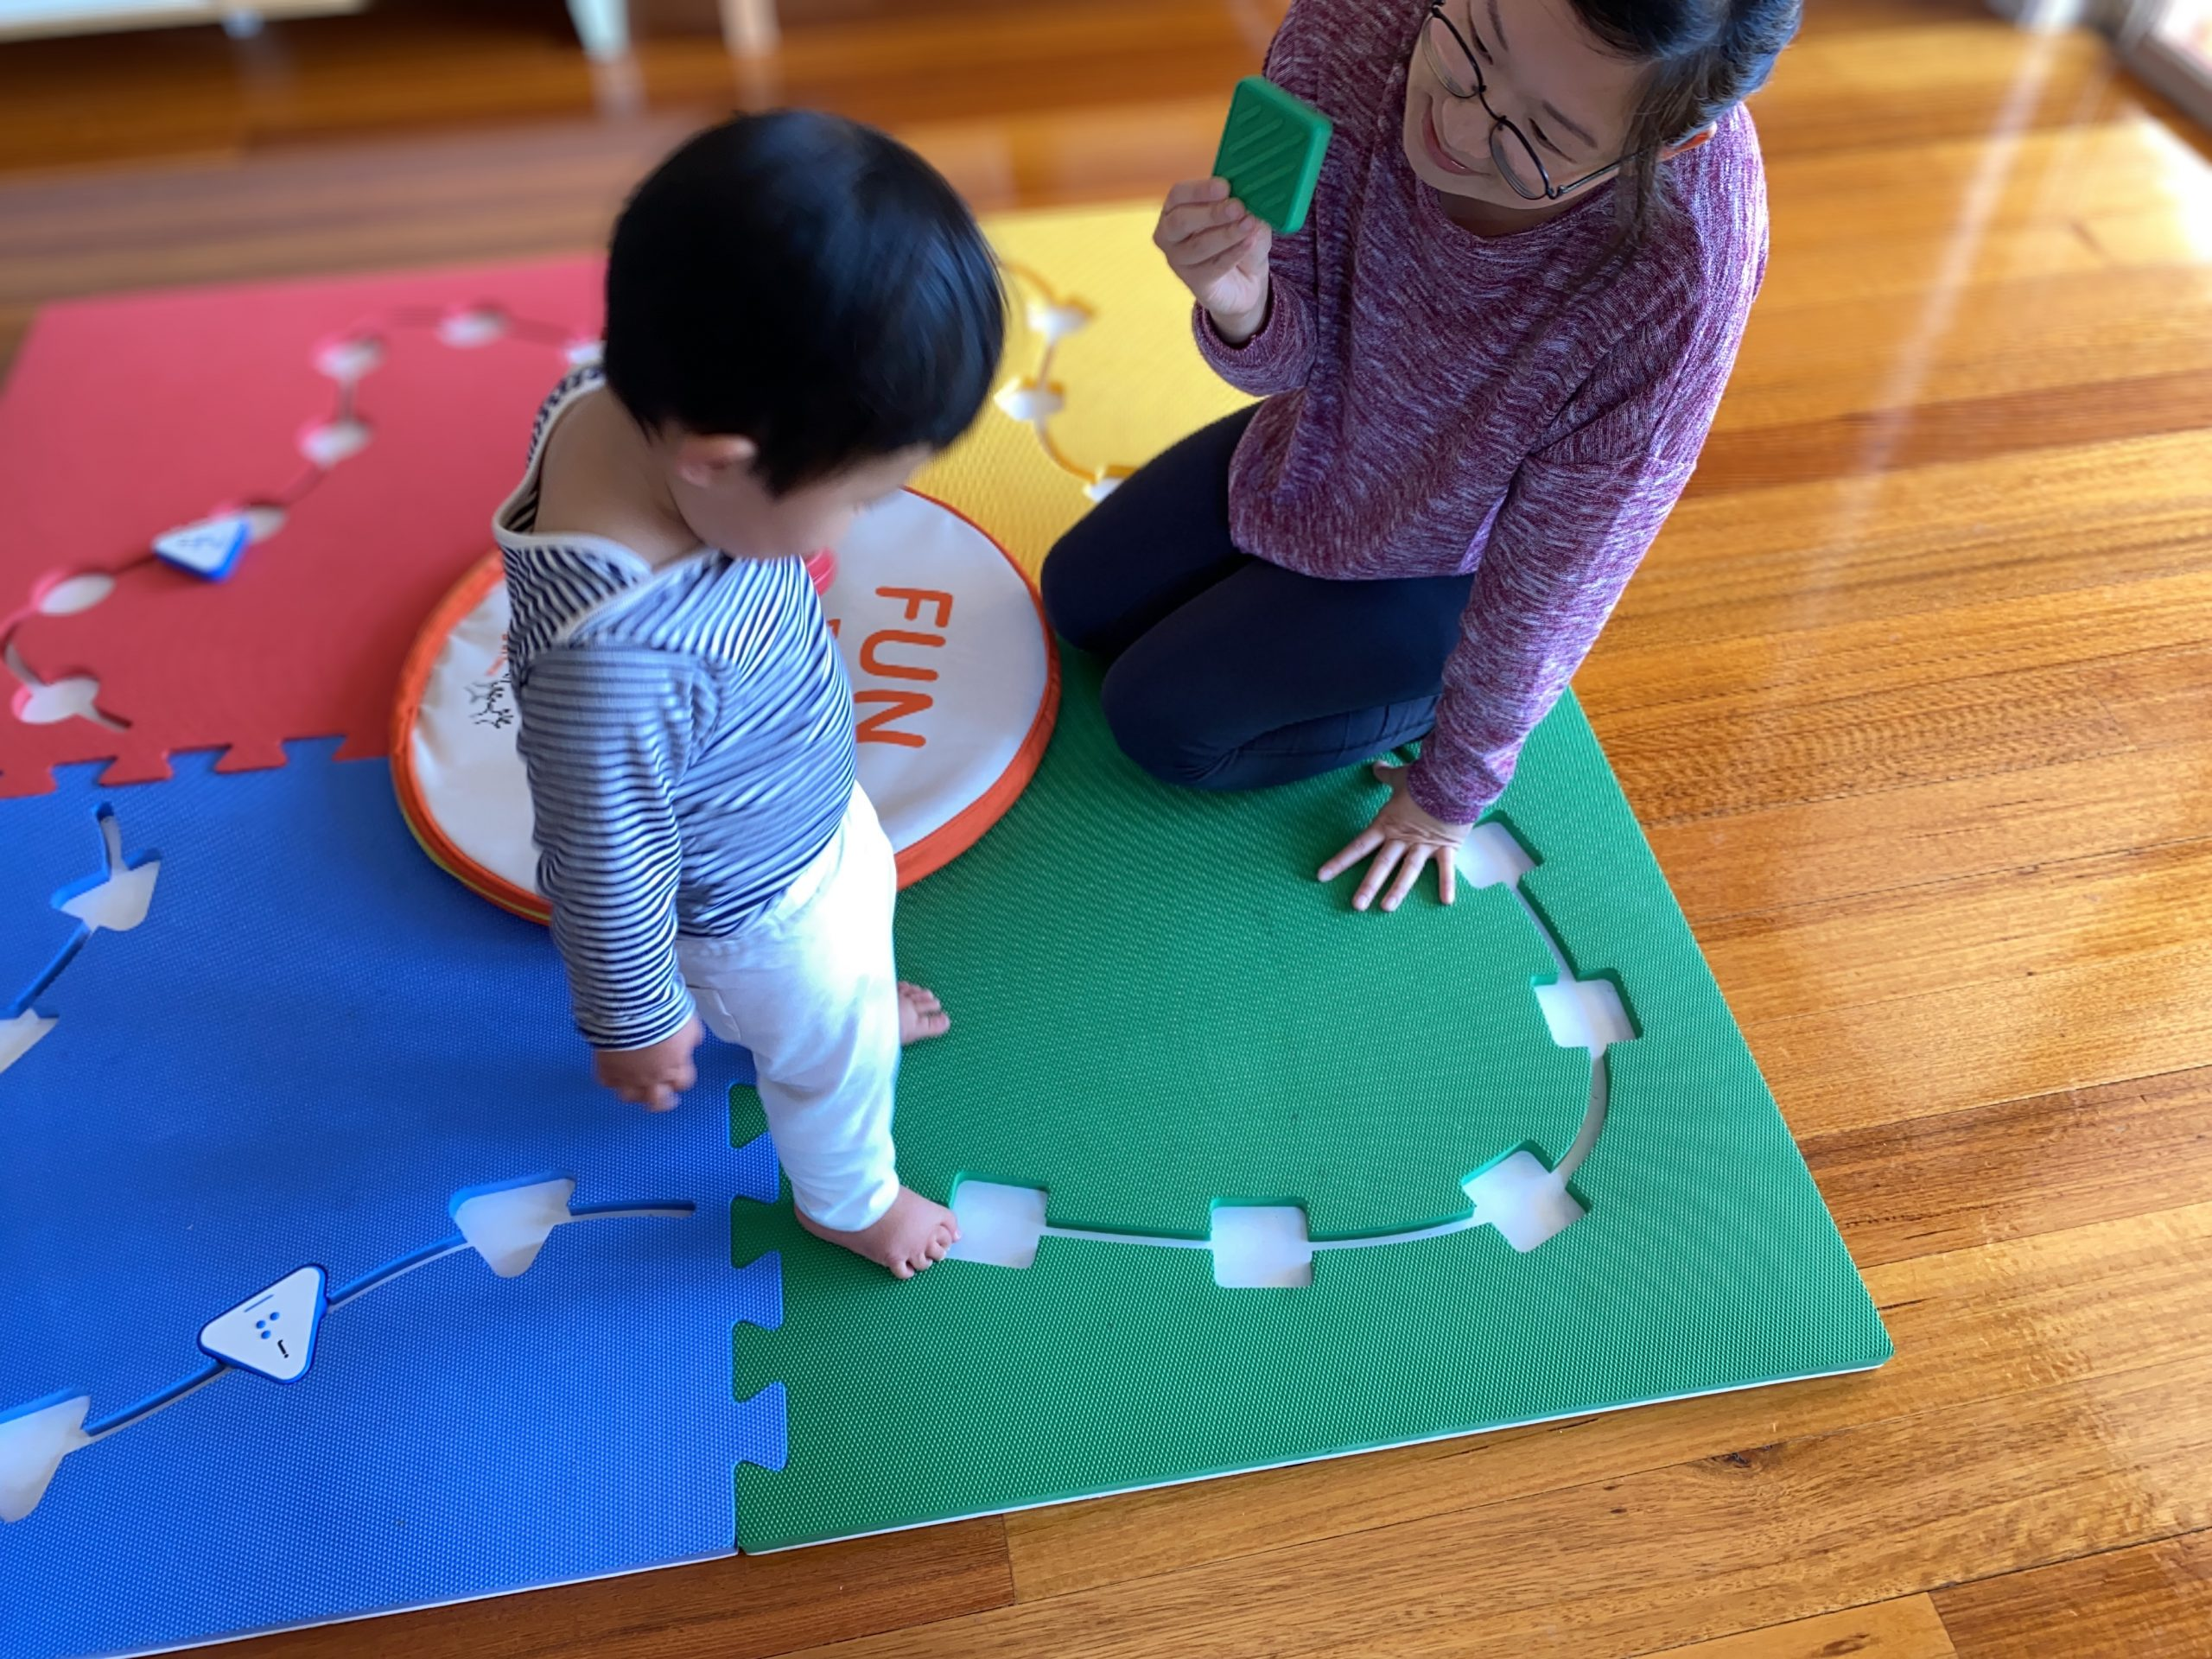 Founder Mandy Lau is playing Reach and Match with her son Oliver at home.